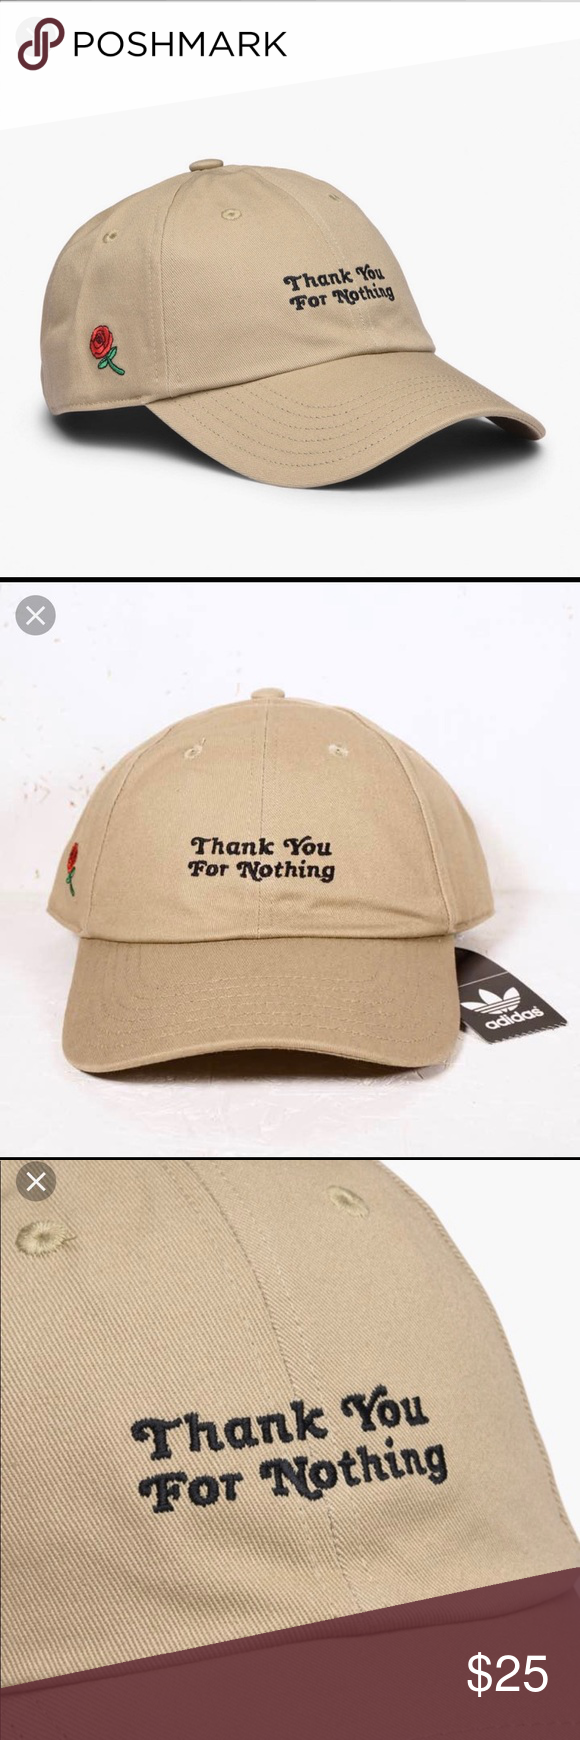 d947e024 New! Thanks for Nothing DAD Hat. Adidas Thanks for Nothing DAD Hat ...